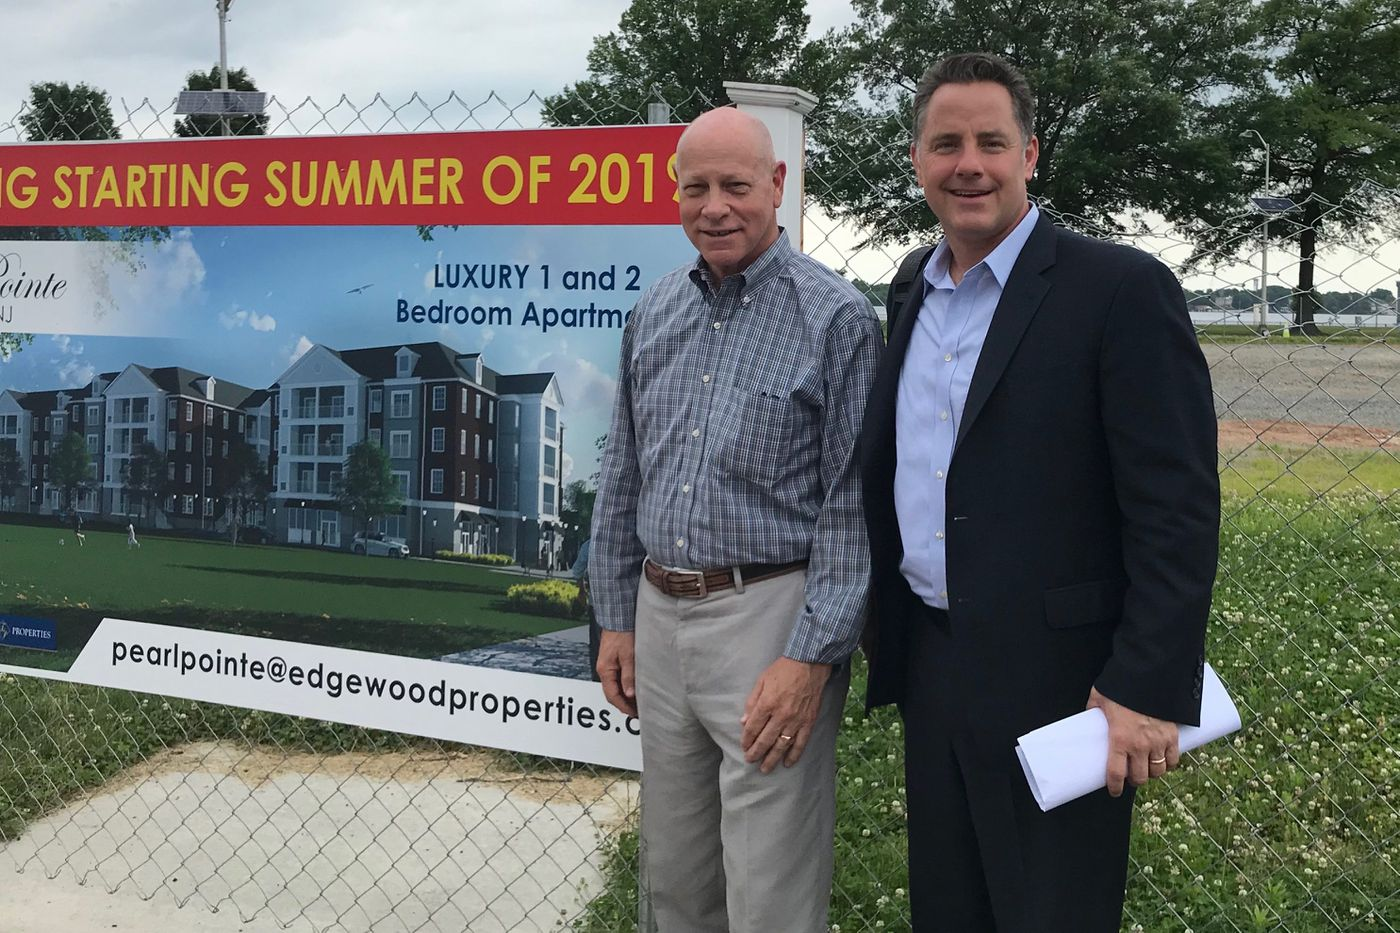 Burlington City hopes to spark a rebirth with luxury riverfront apartments